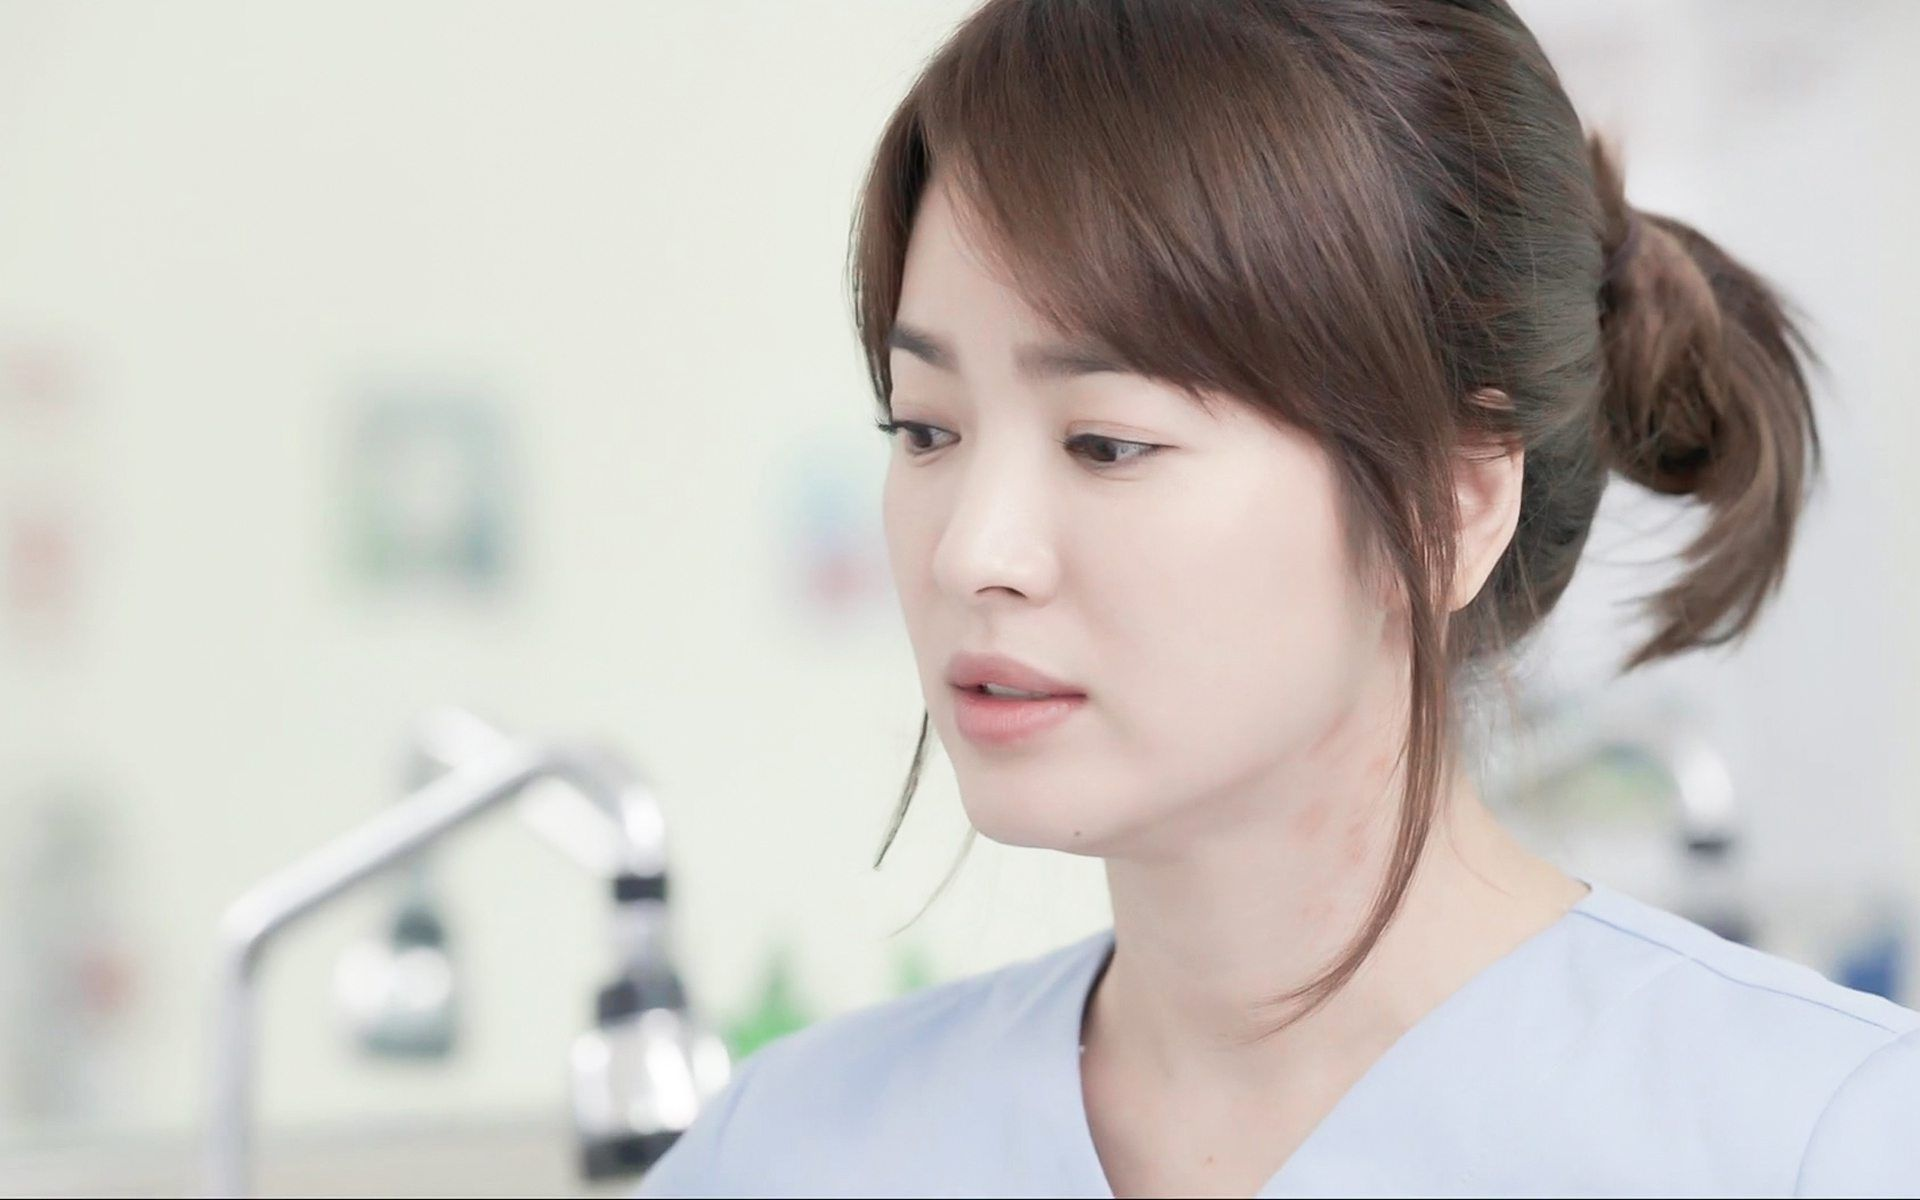 Song Hye Kyo Spotted Rocking A Fresh New Hairstyle — Koreaboo